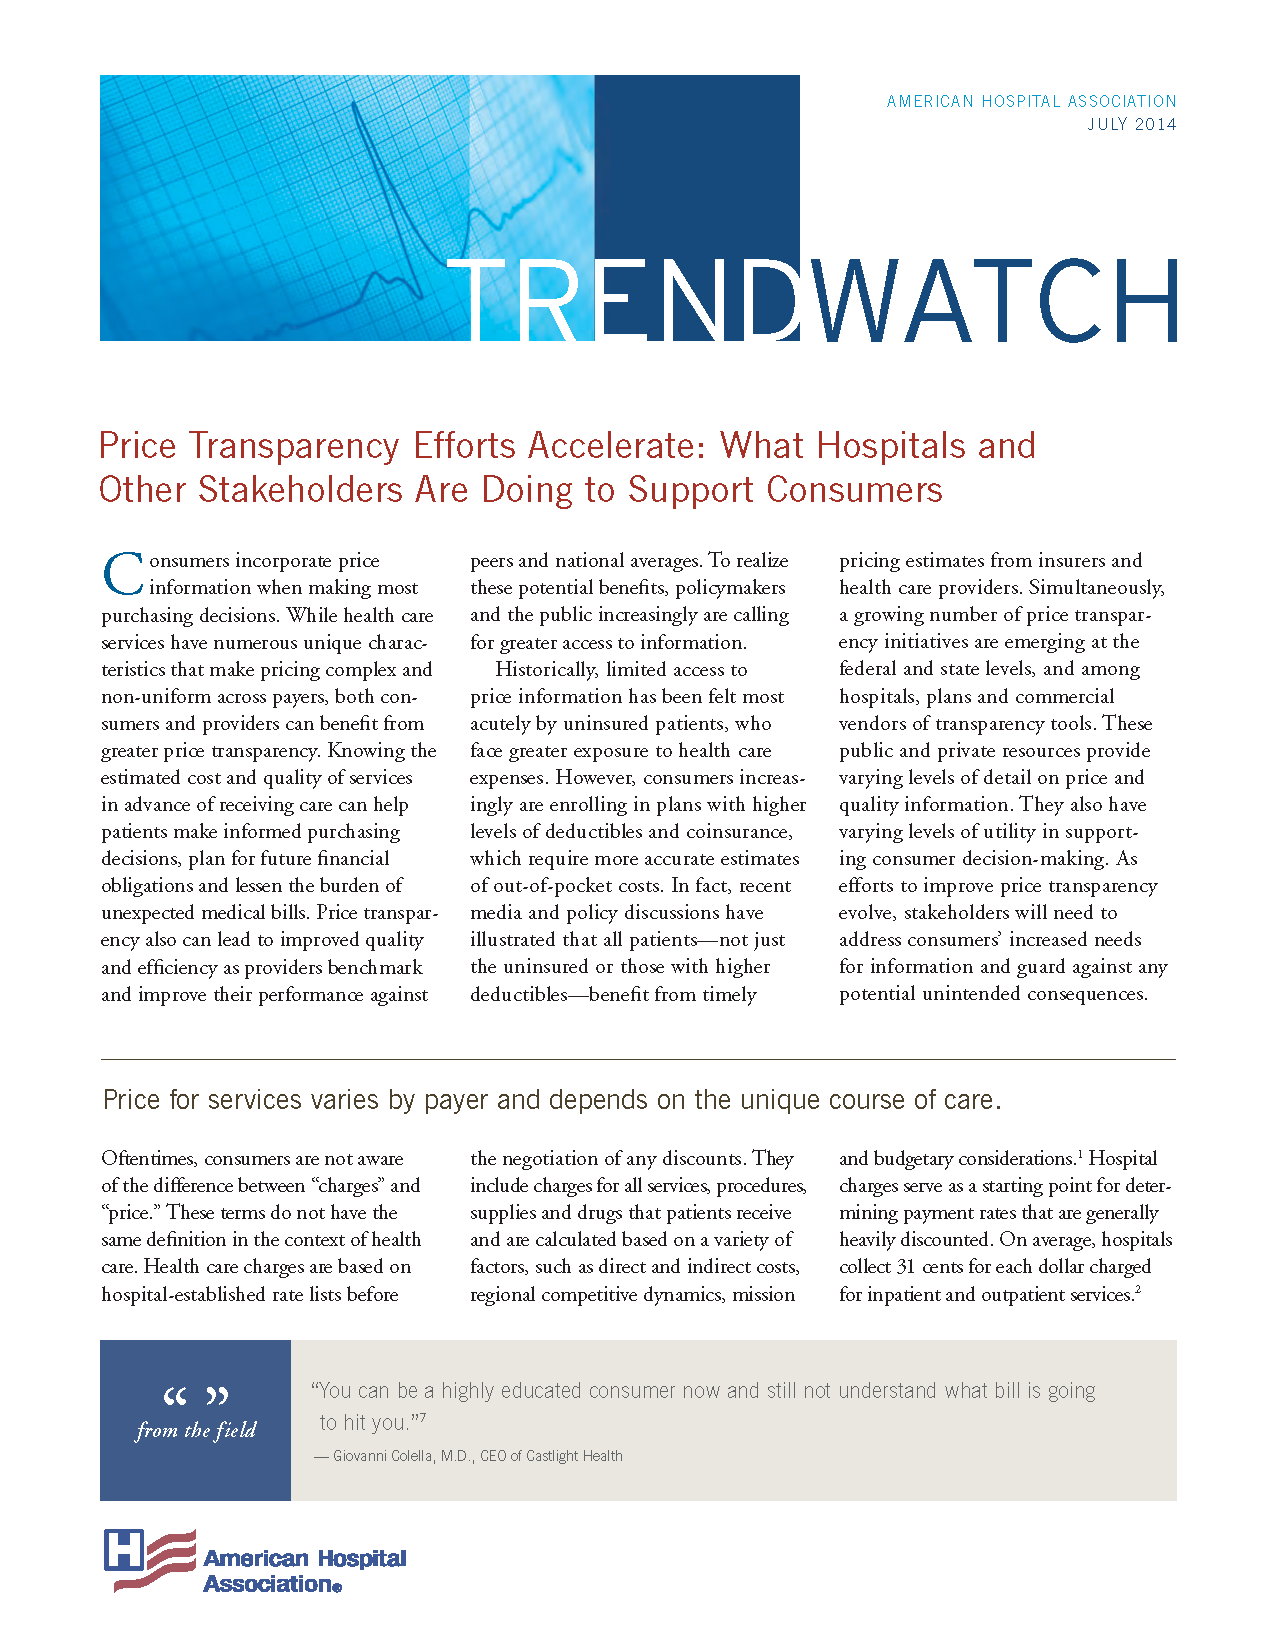 Download Price Transparency Efforts Accelerate: What Hospitals and Other Stakeholders Are Doing to Support Consumers PDF